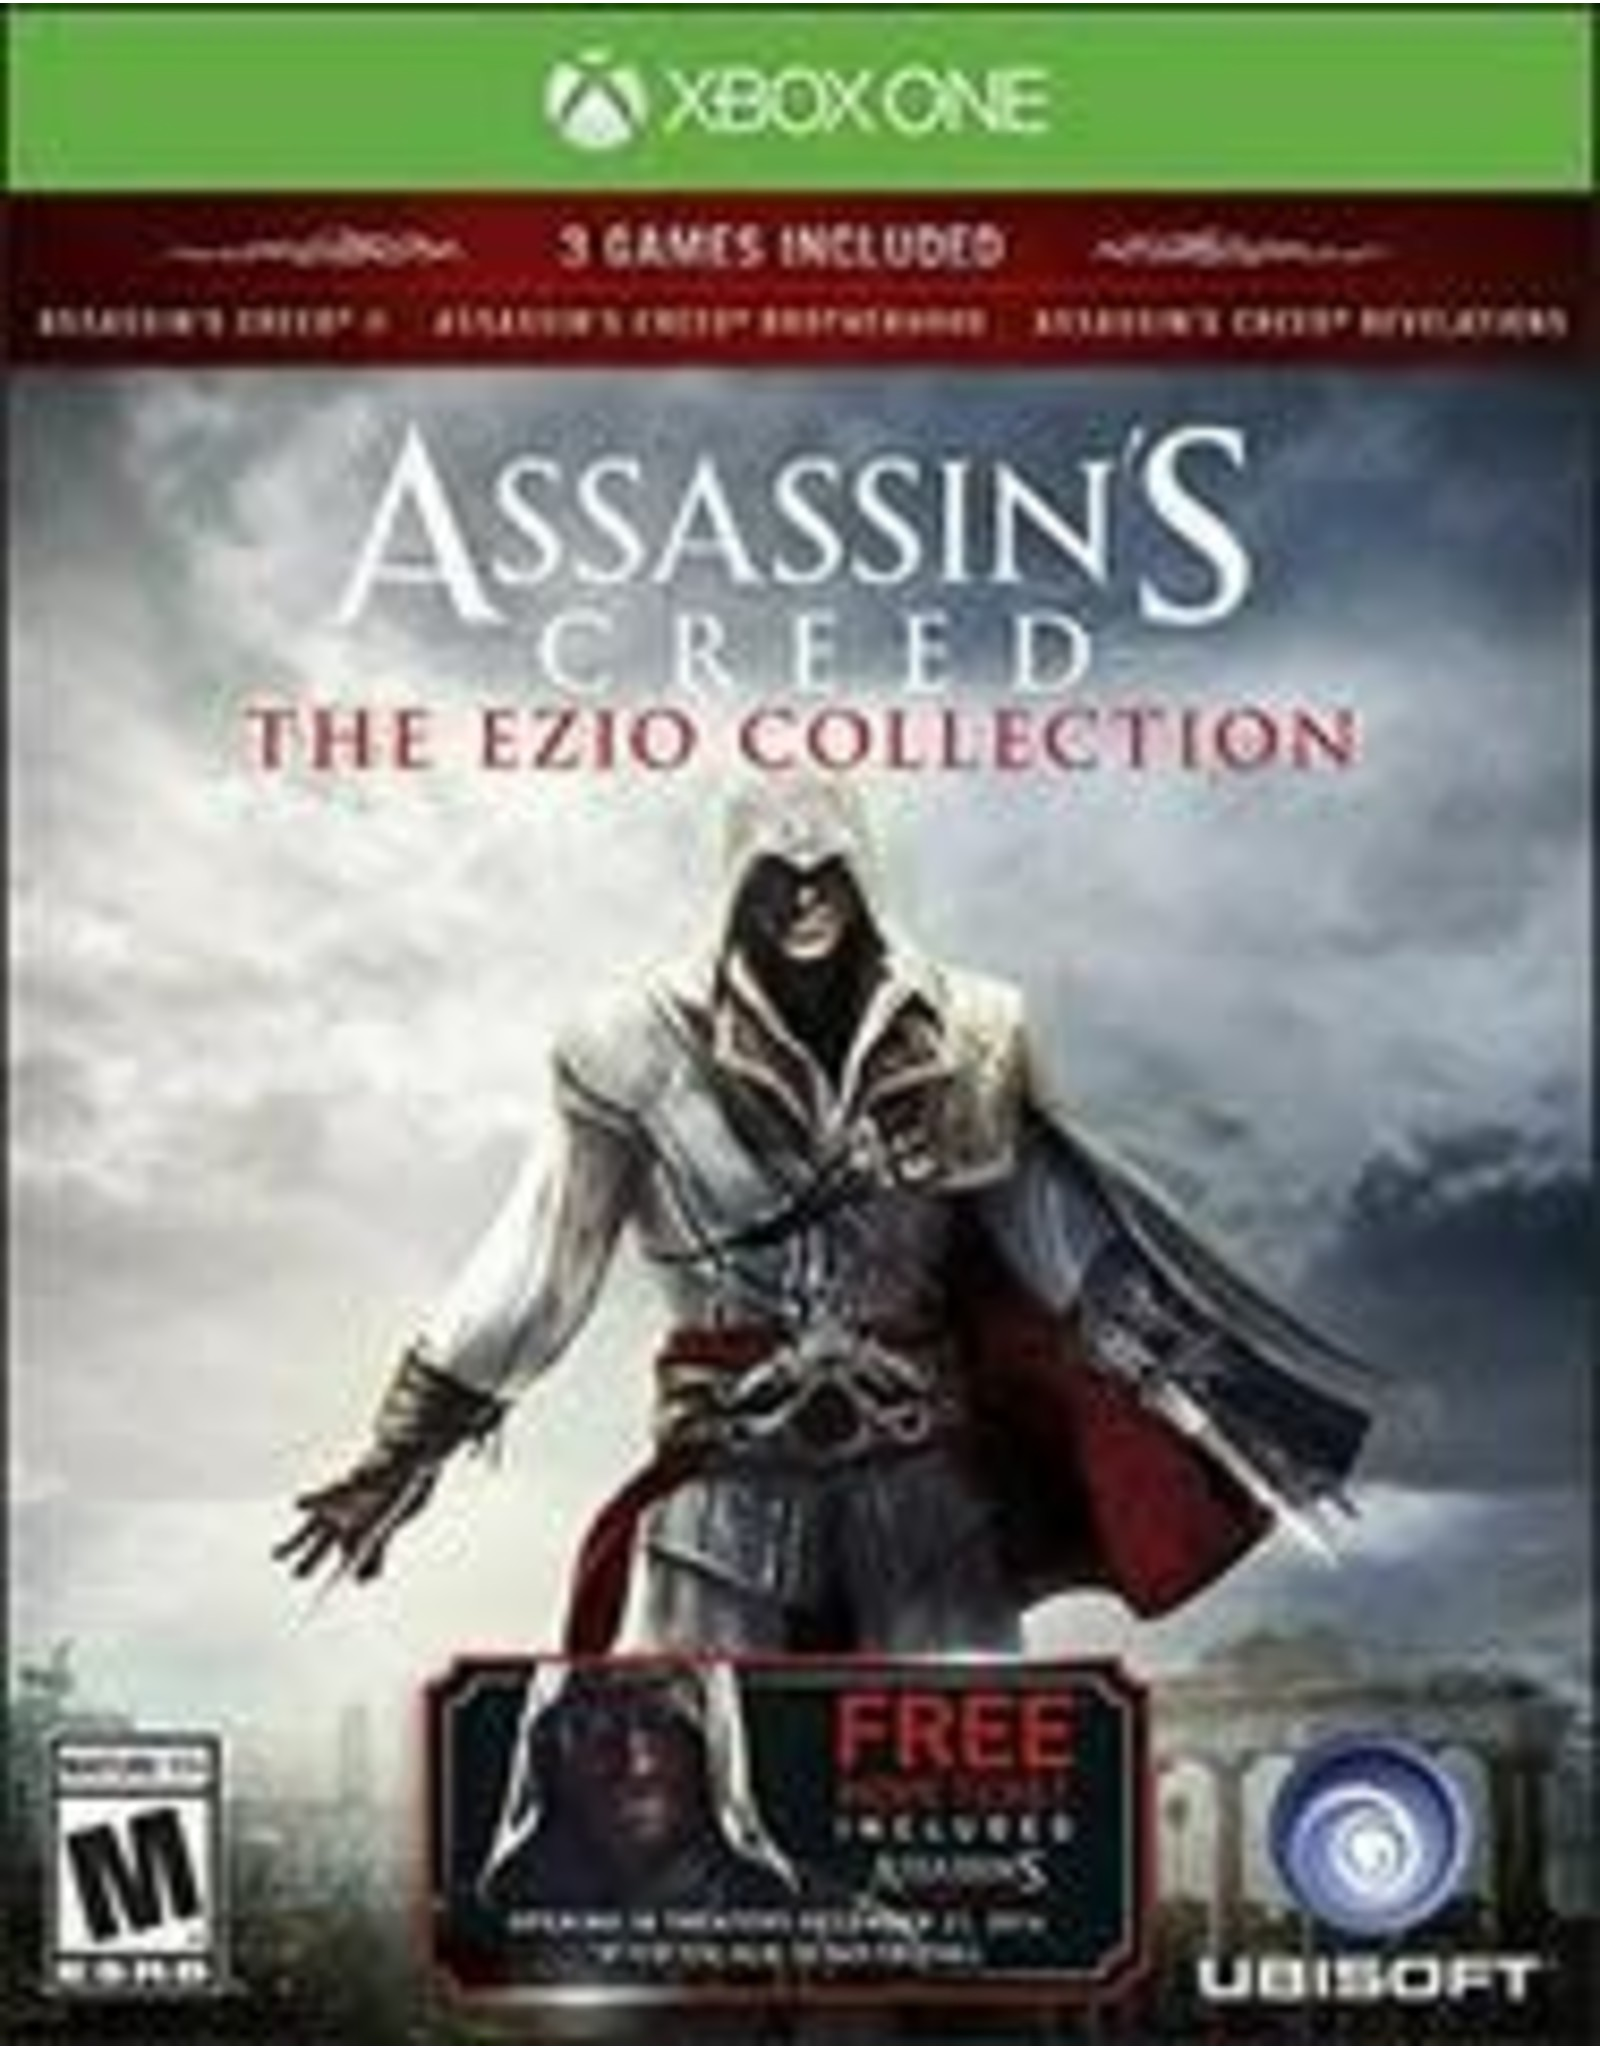 Xbox One Assassin's Creed The Ezio Collection (Used)